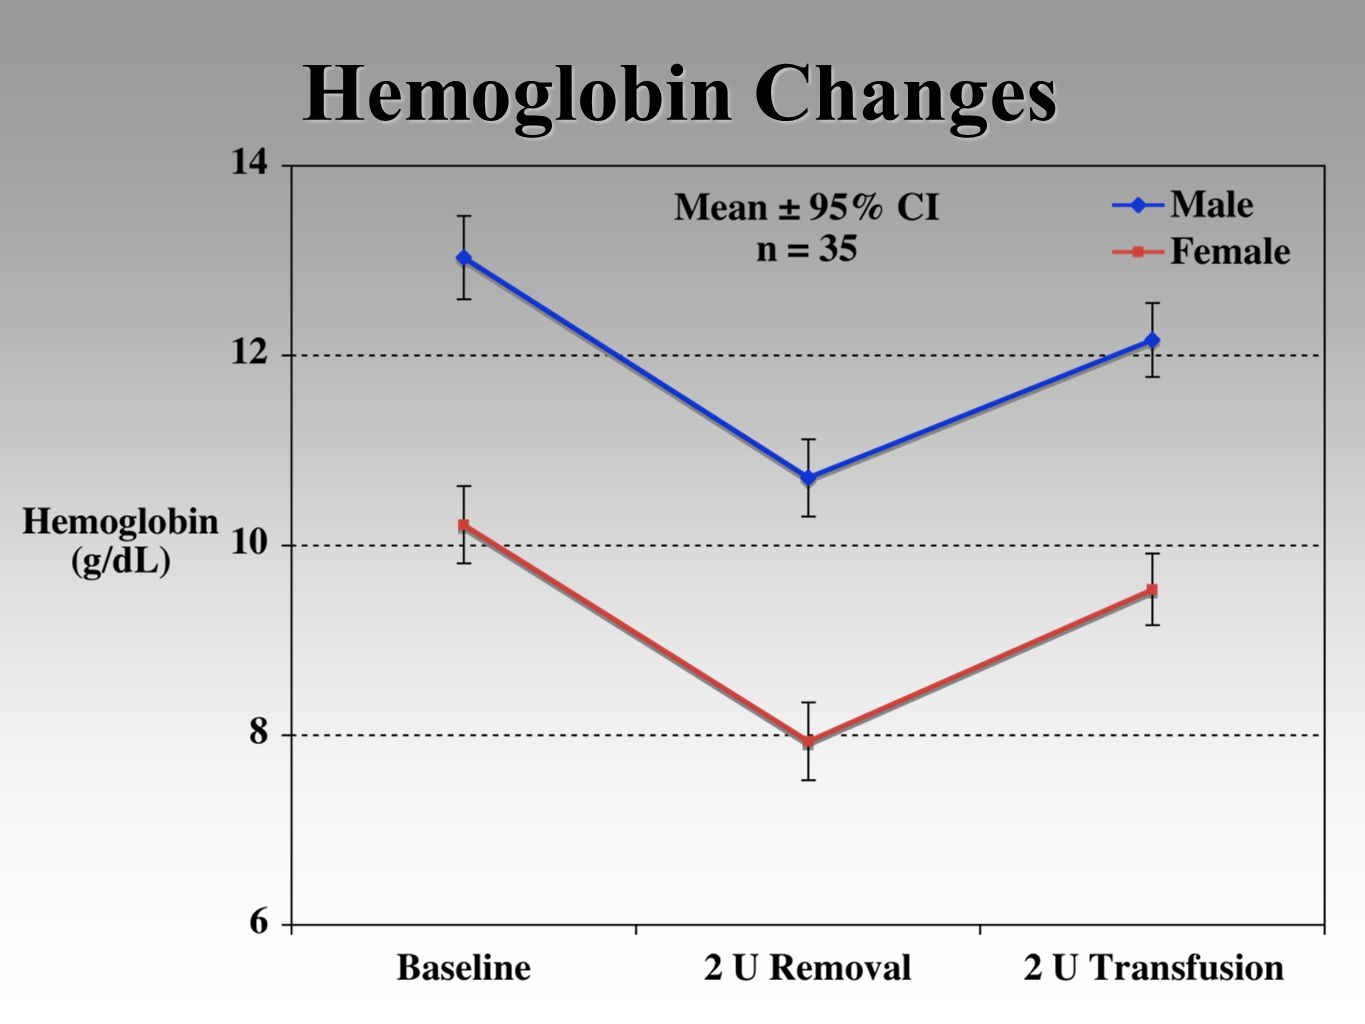 Hemoglobin Changes